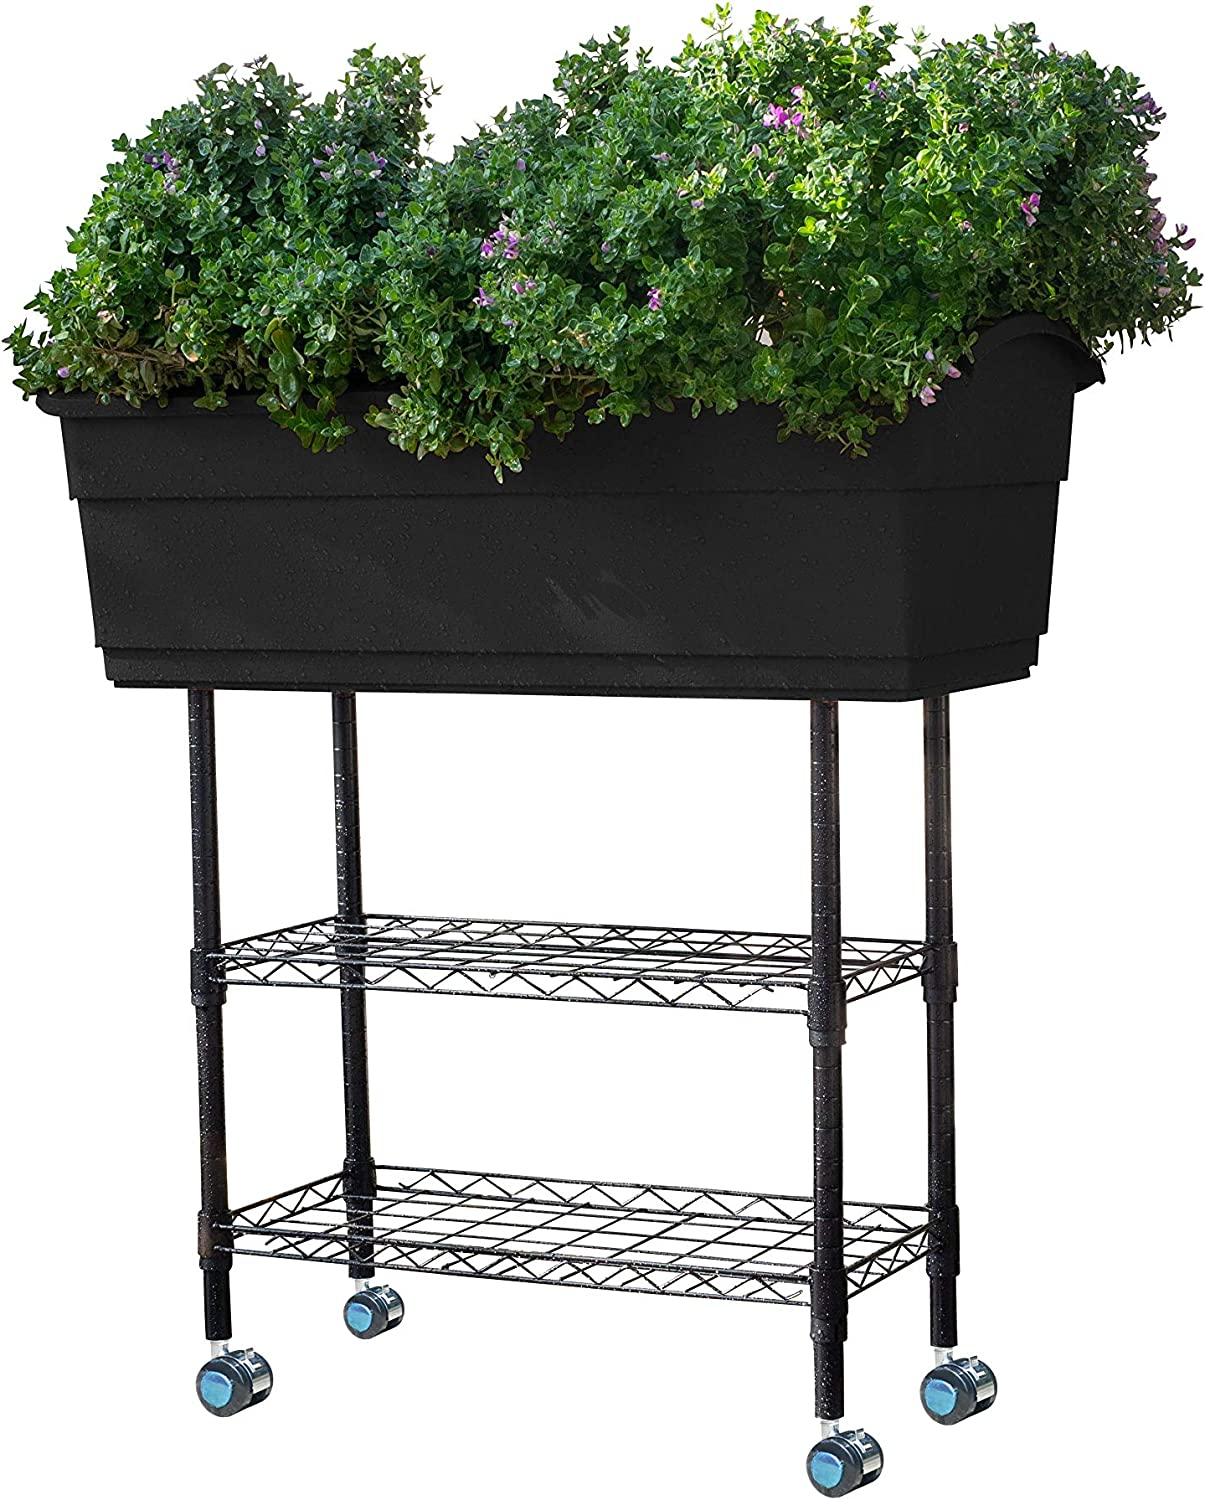 Watex WX161 High quality new Mobile Elevated Garden Max 80% OFF Bed Black Gardening Indoor